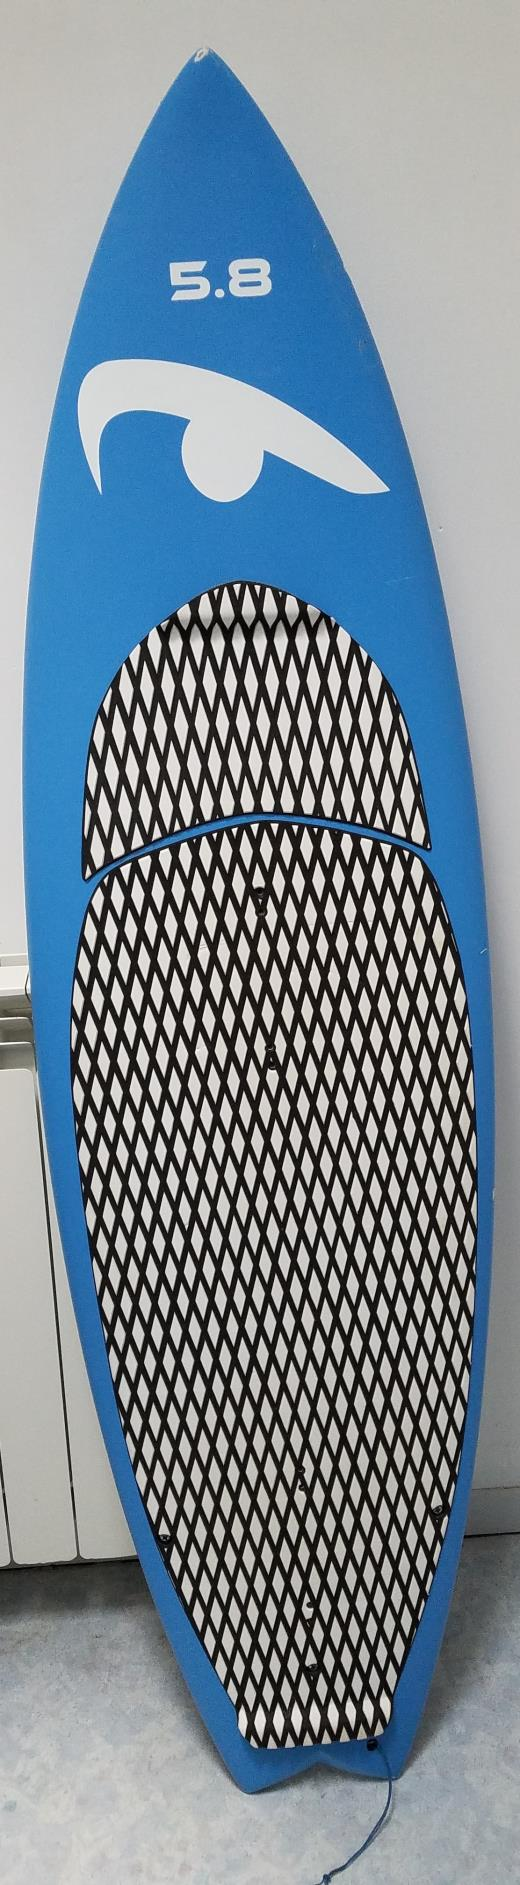 Surf Rapace Swell 5.8